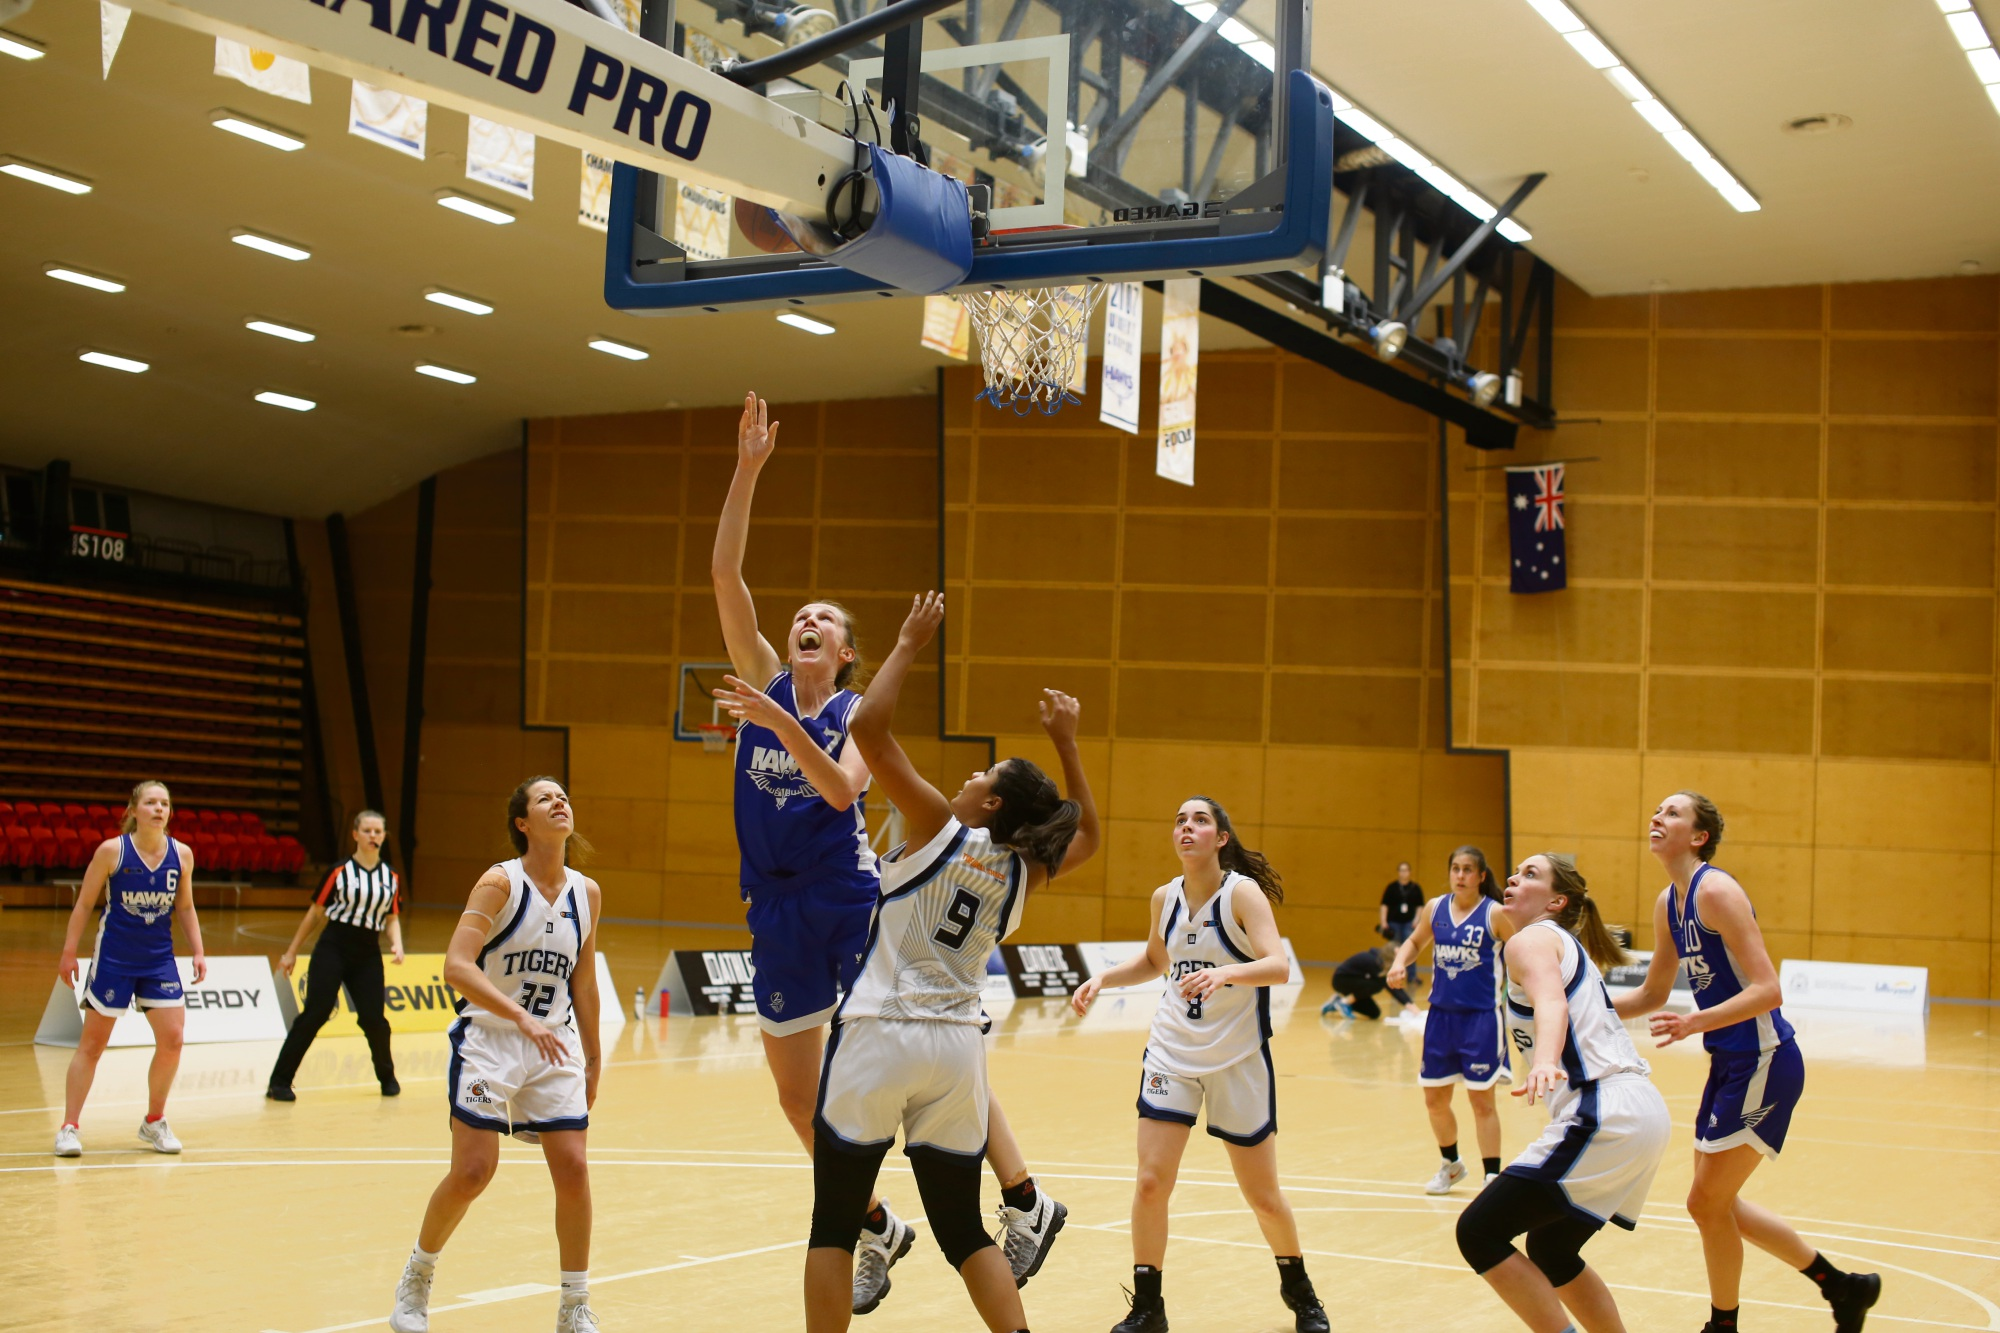 Hawks player Toni Farnworth shooting over the top of the Tigers' Des Kelley. Picture: James O'Donohue